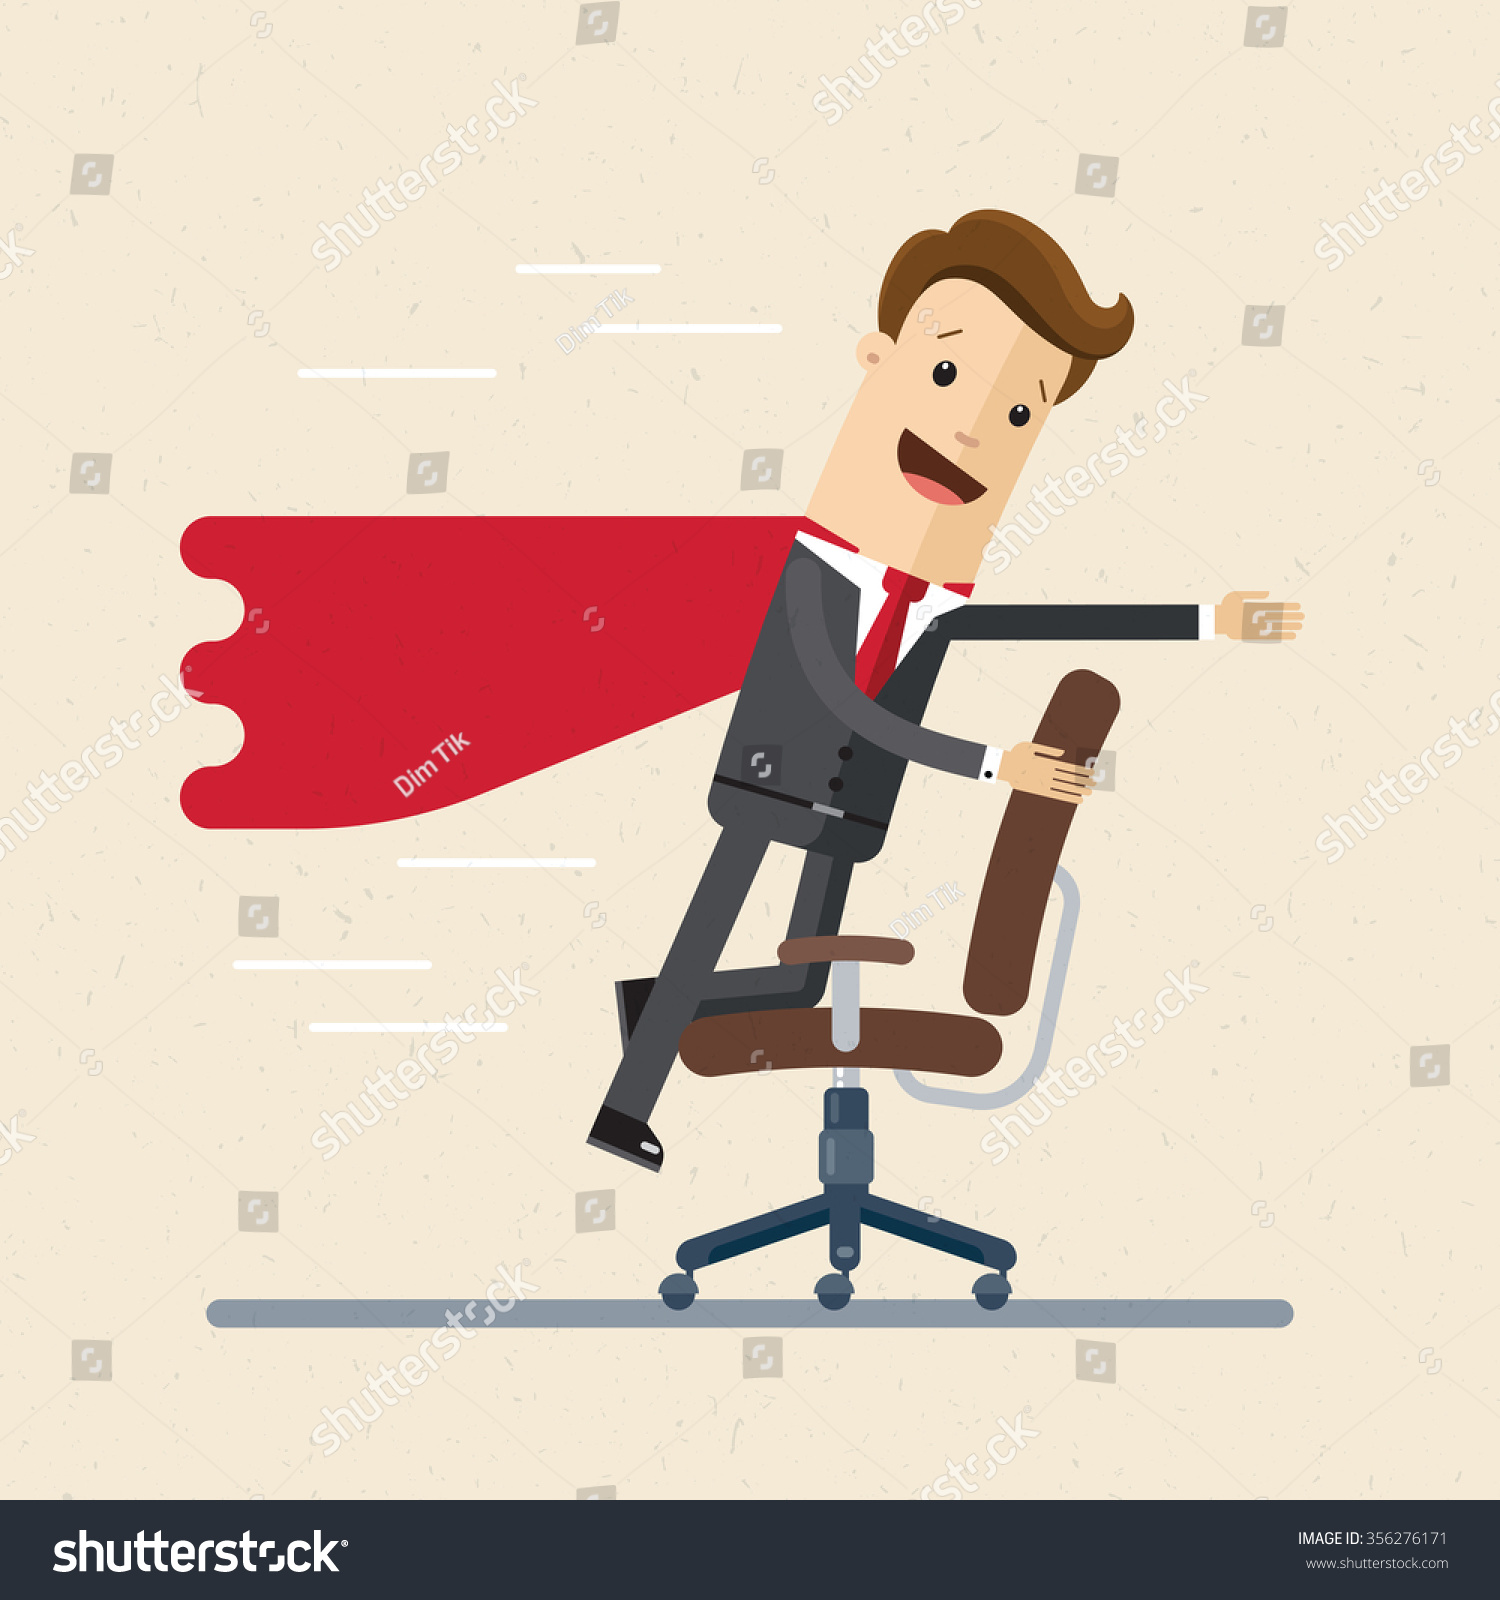 office chair illustration patio chairs for fire pit businessman manager like superman on stock vector